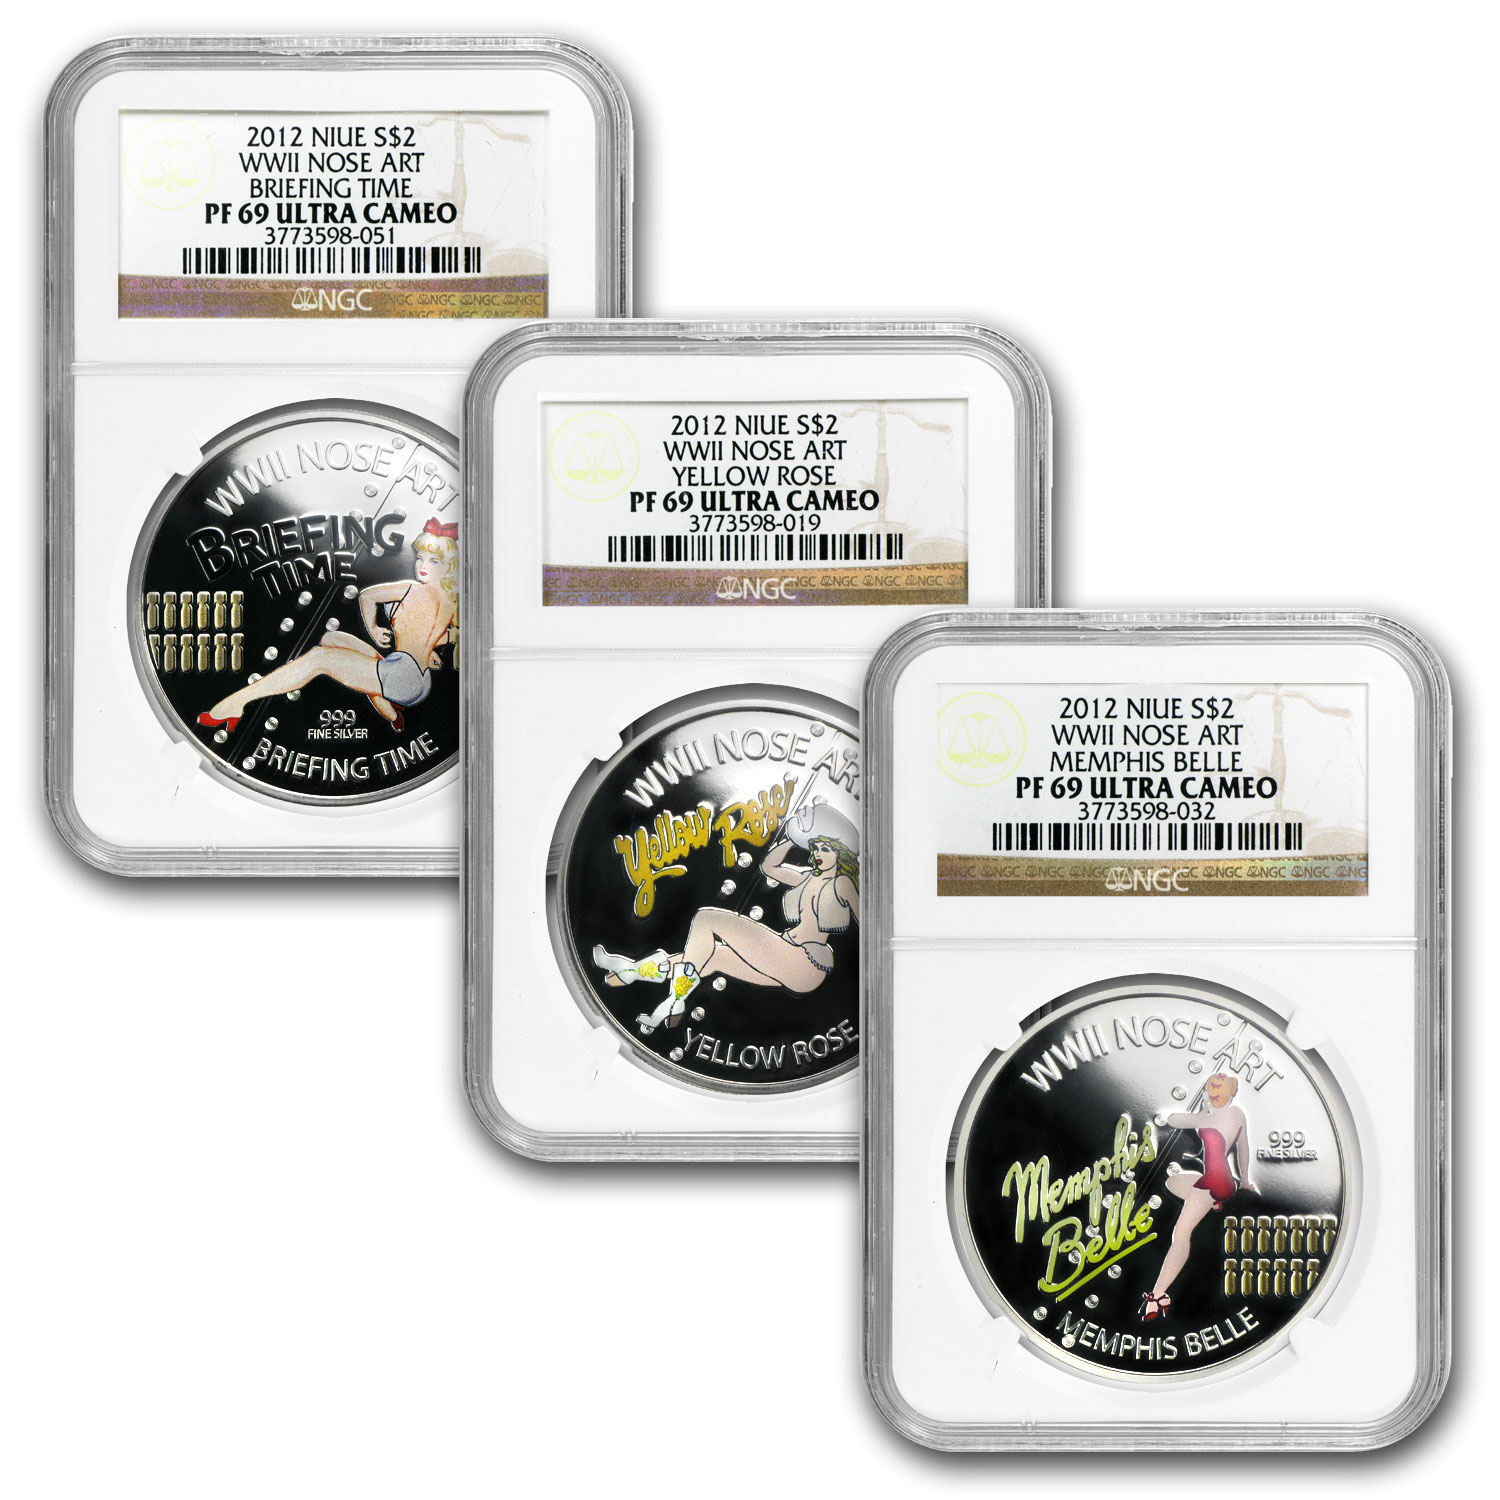 2012 3x 1 oz Silver $2 Niue WWII Nose Art Set PF-69 NGC